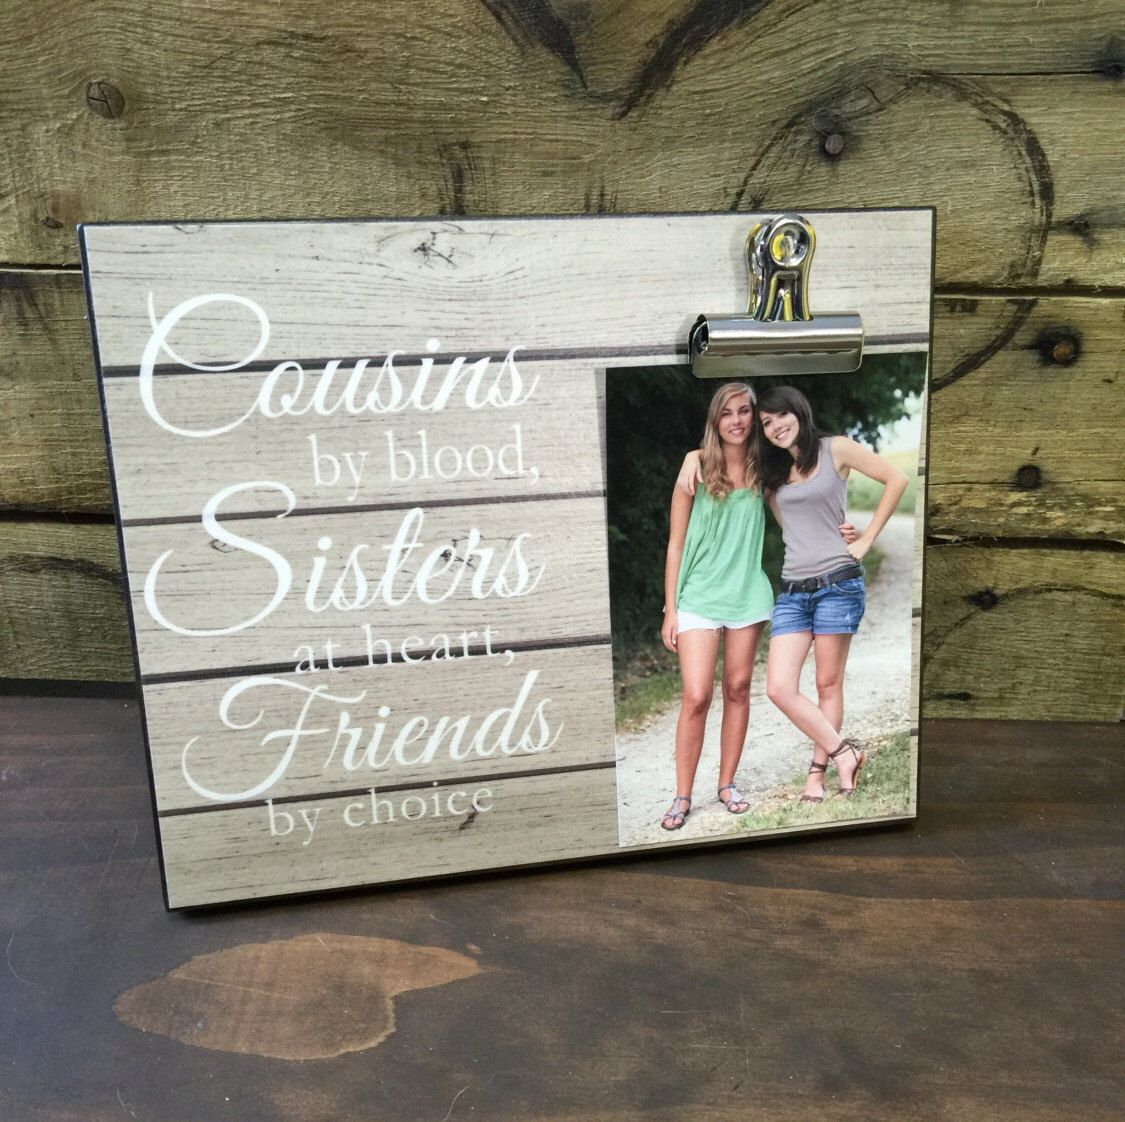 Personalized Picture Frame Gift For Sister Best Friend Cousins By Blood Sisters At Heart Friends Choice Wedding